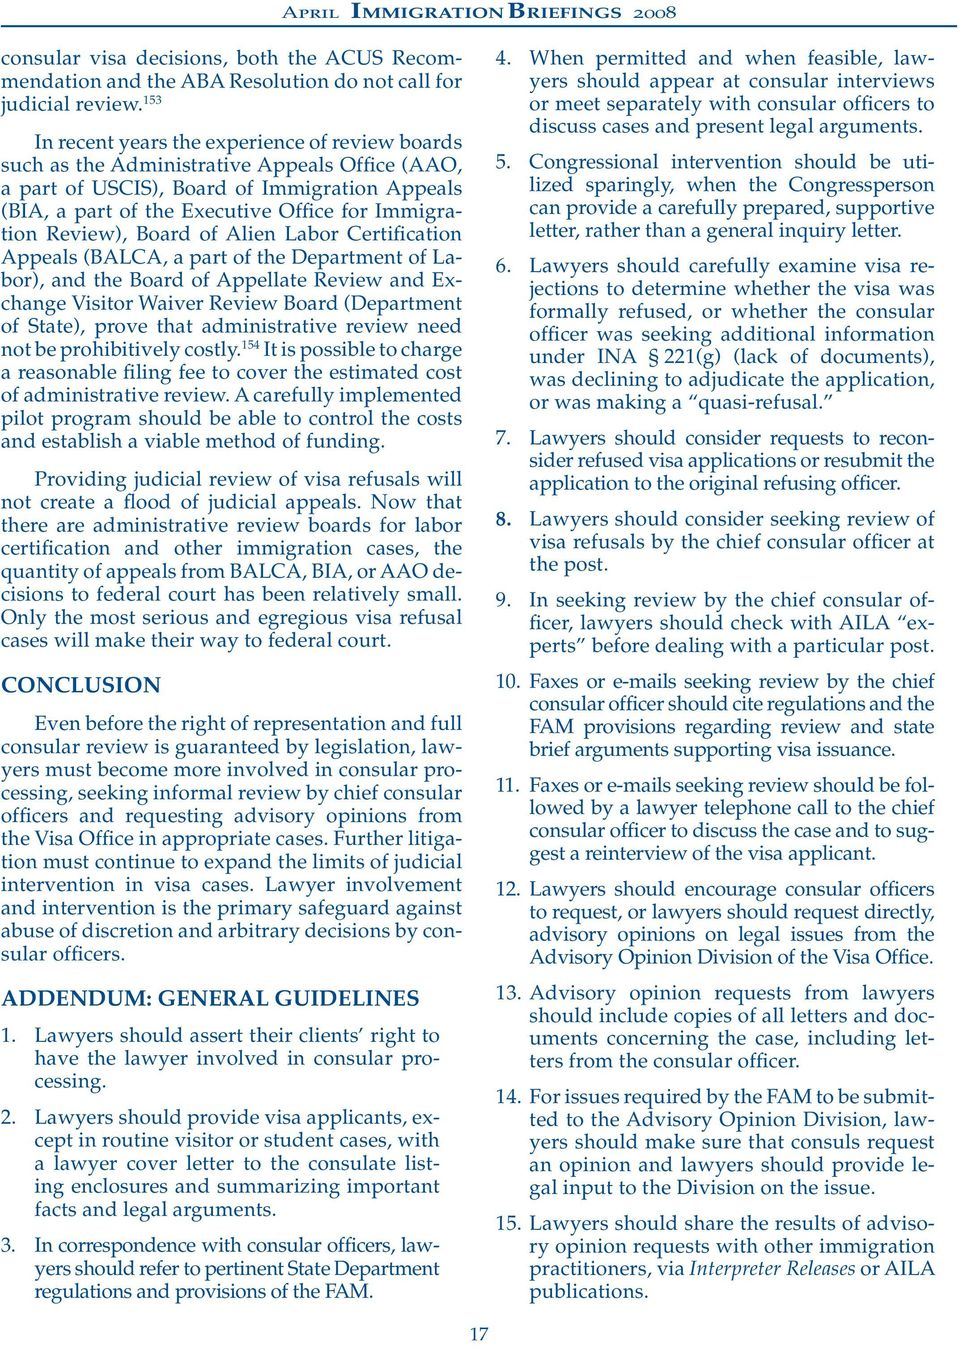 THE LAWYER S ROLE IN CONSULAR VISA REFUSALS - PDF